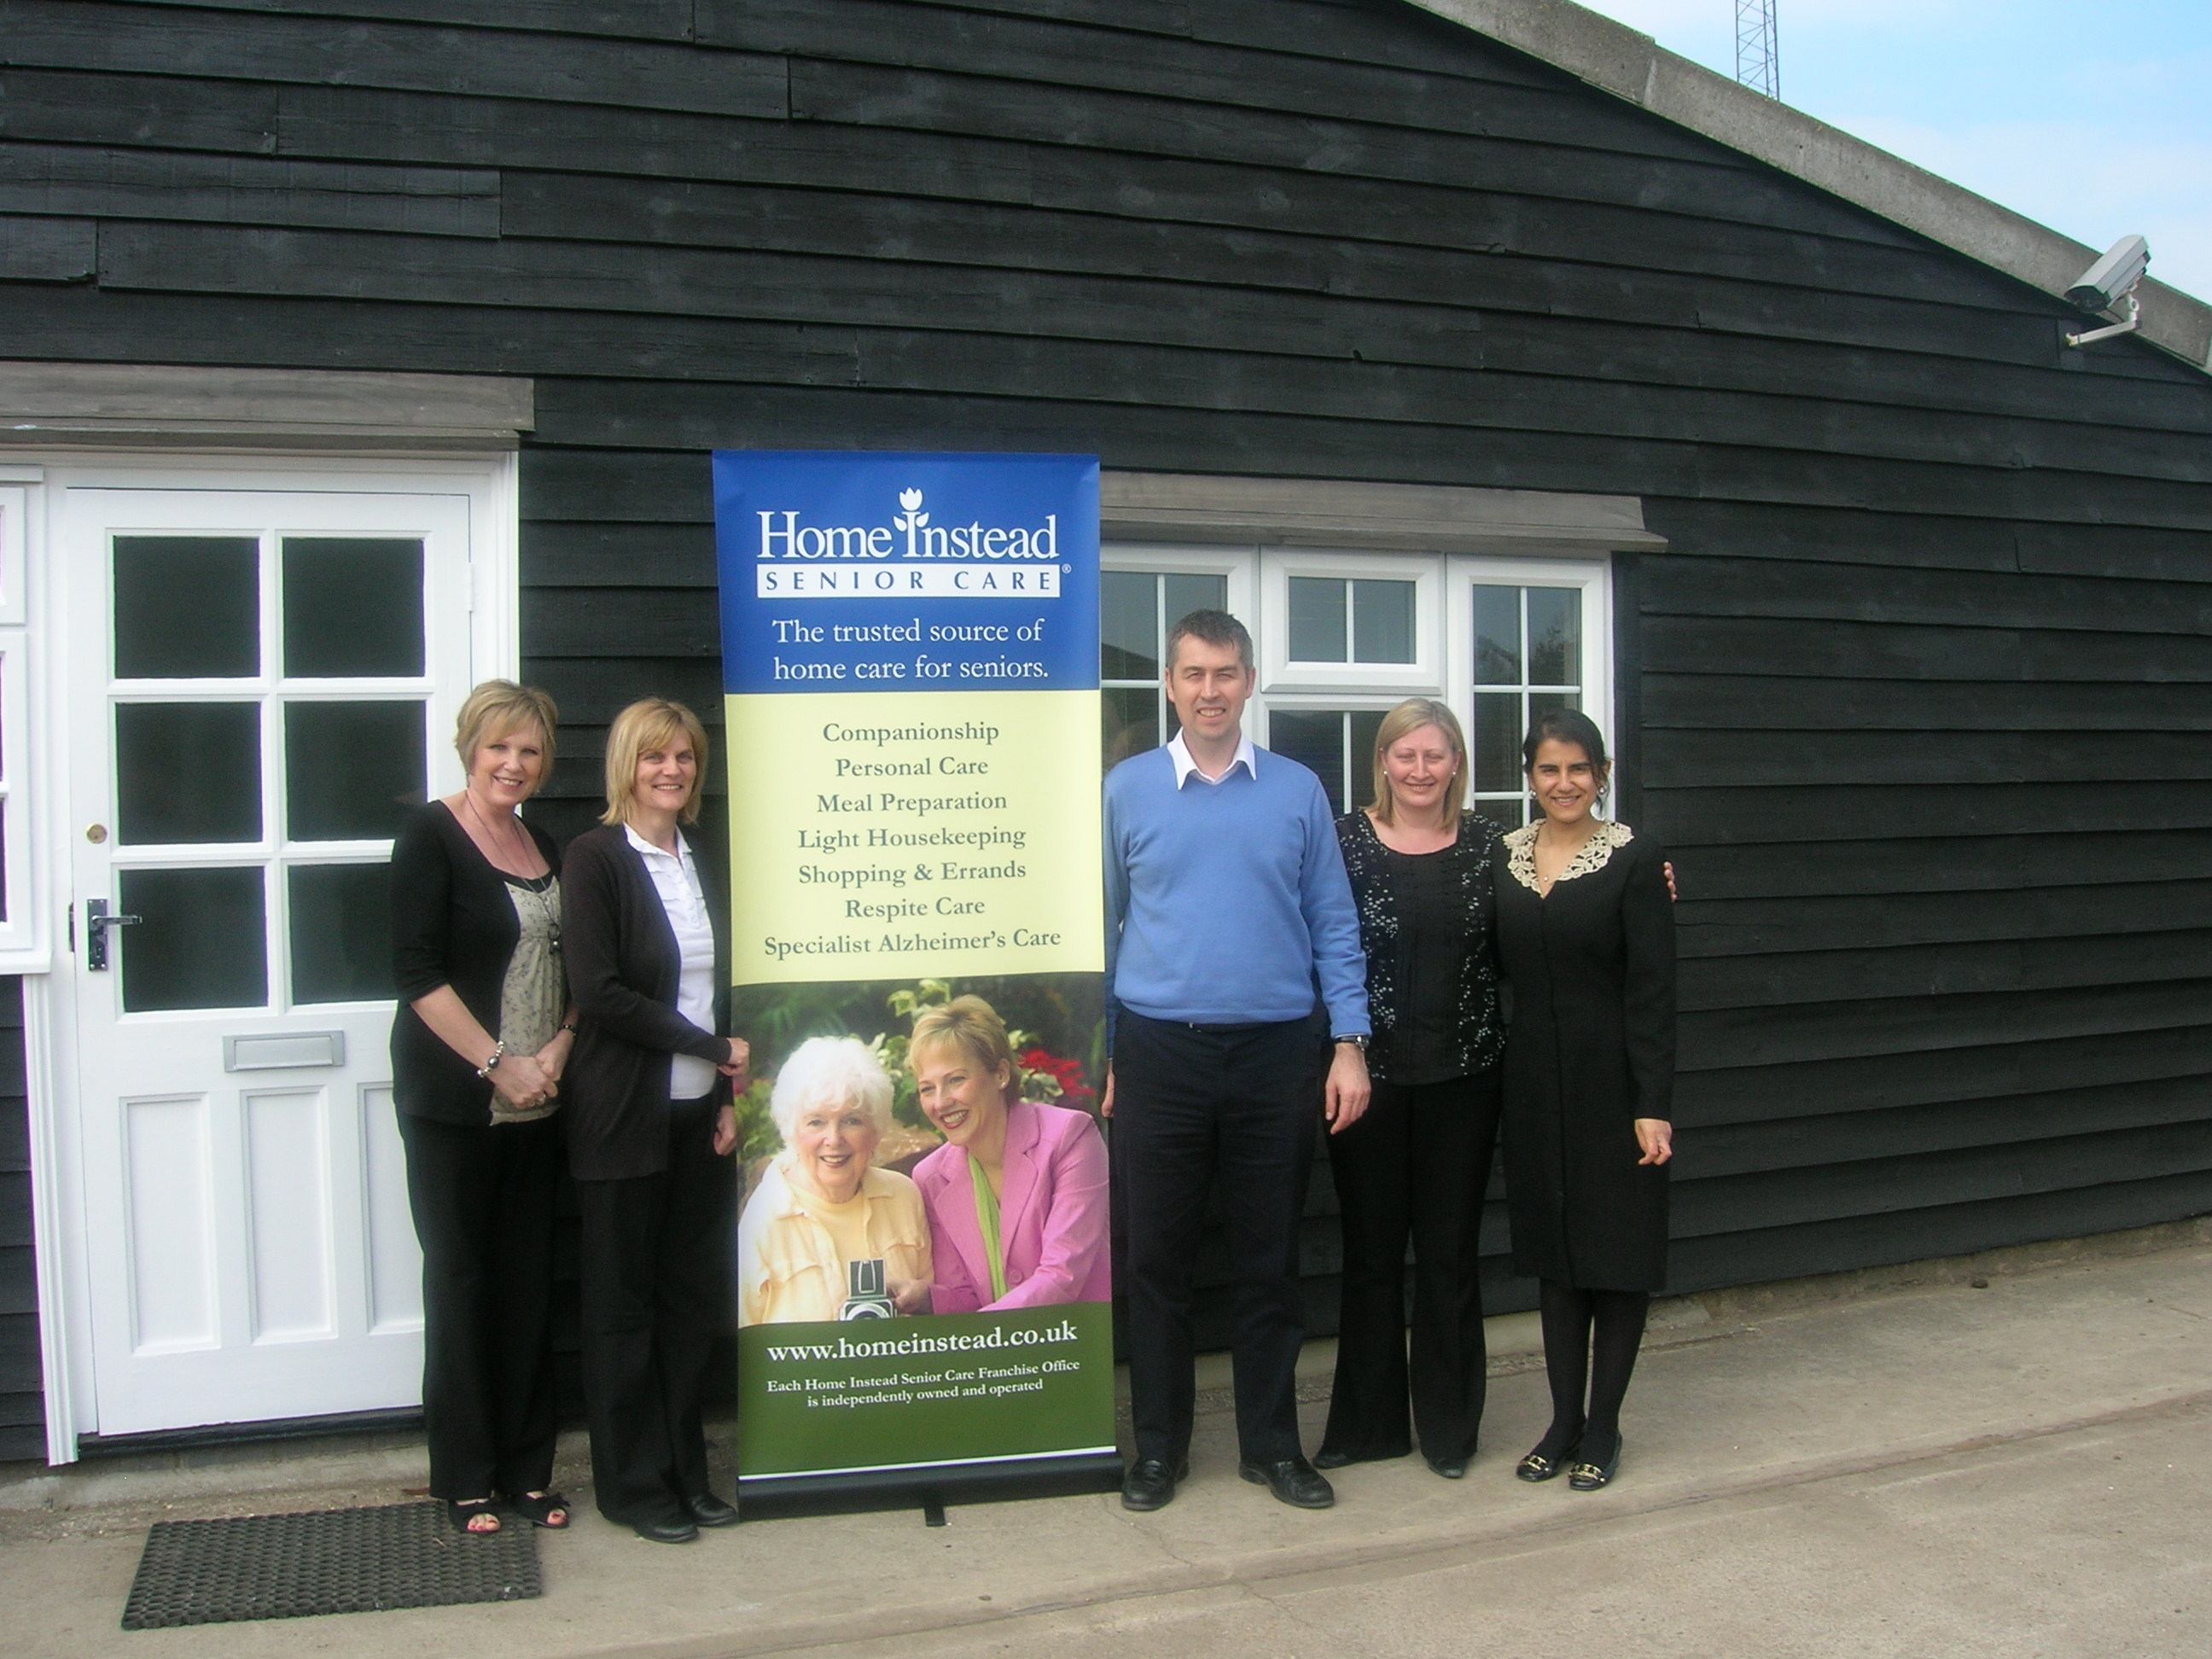 Home Instead Brentwood owner Steve Willoughby and team at Stubbers Farm in Blackmore